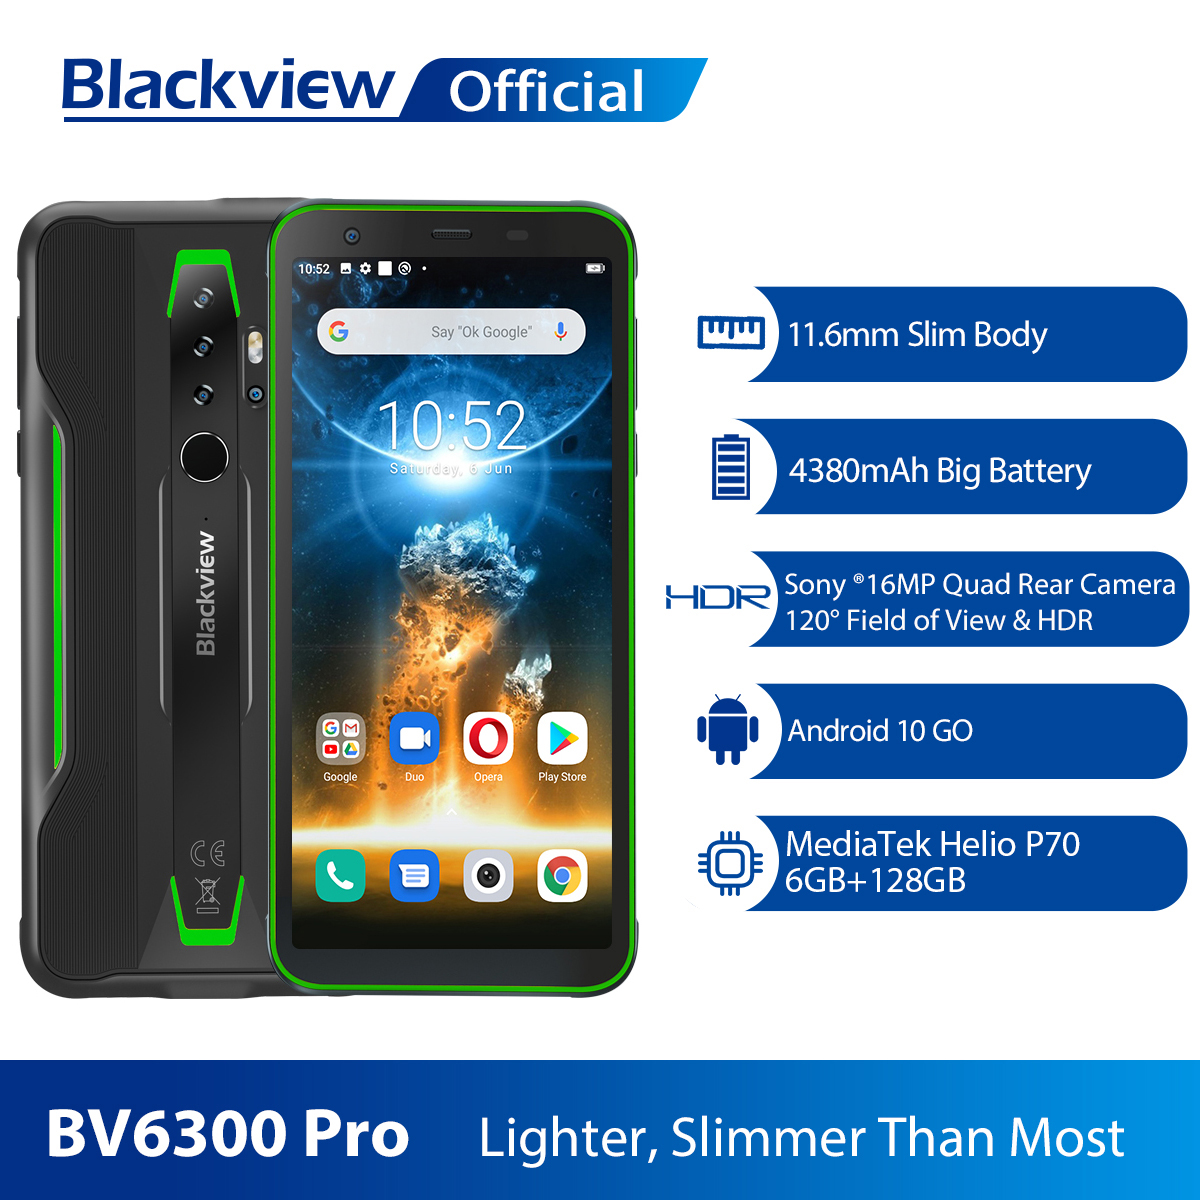 BLACKVIEW 2020 New BV6300 Pro Helio P70 6GB+128GB Smartphone 4380mAh Android 10.0 Mobile Phone NFC IP68 Waterproof Rugged Phone